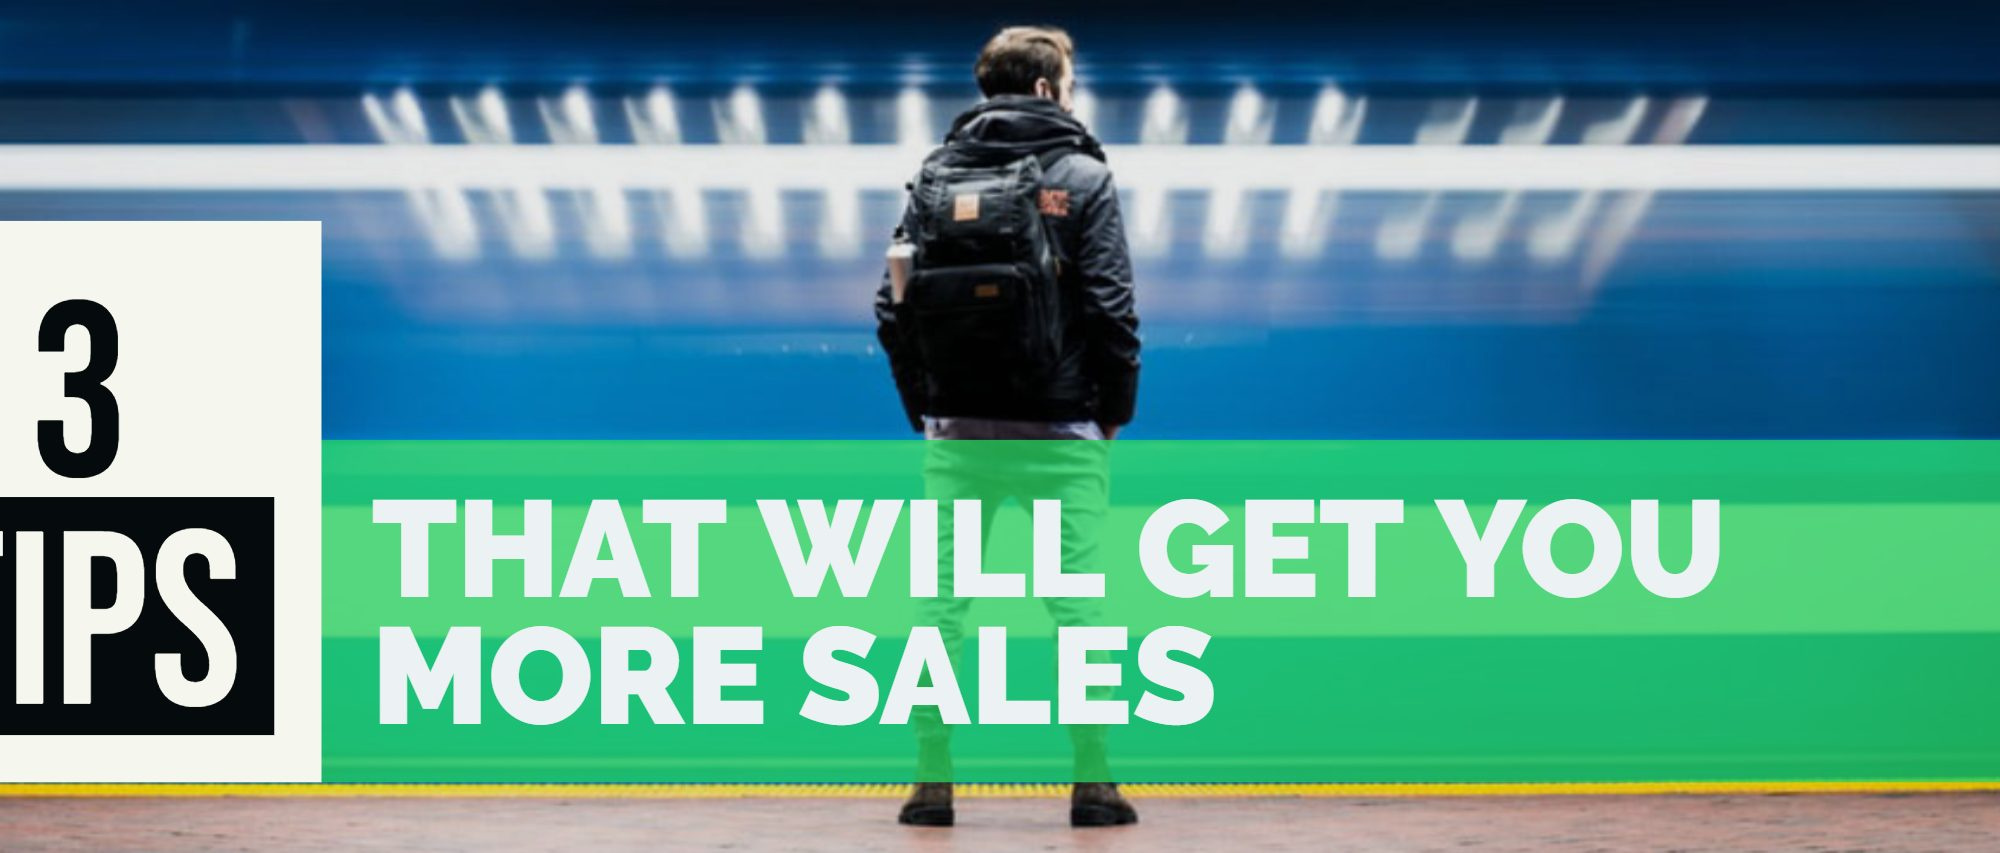 3 Tips That Will Get You More Sales Global Sales Consultant Global Sales Coach Motivational Speaker Tedx Speaker Forbes Entrepreneur AskMen Success Paul Argueta